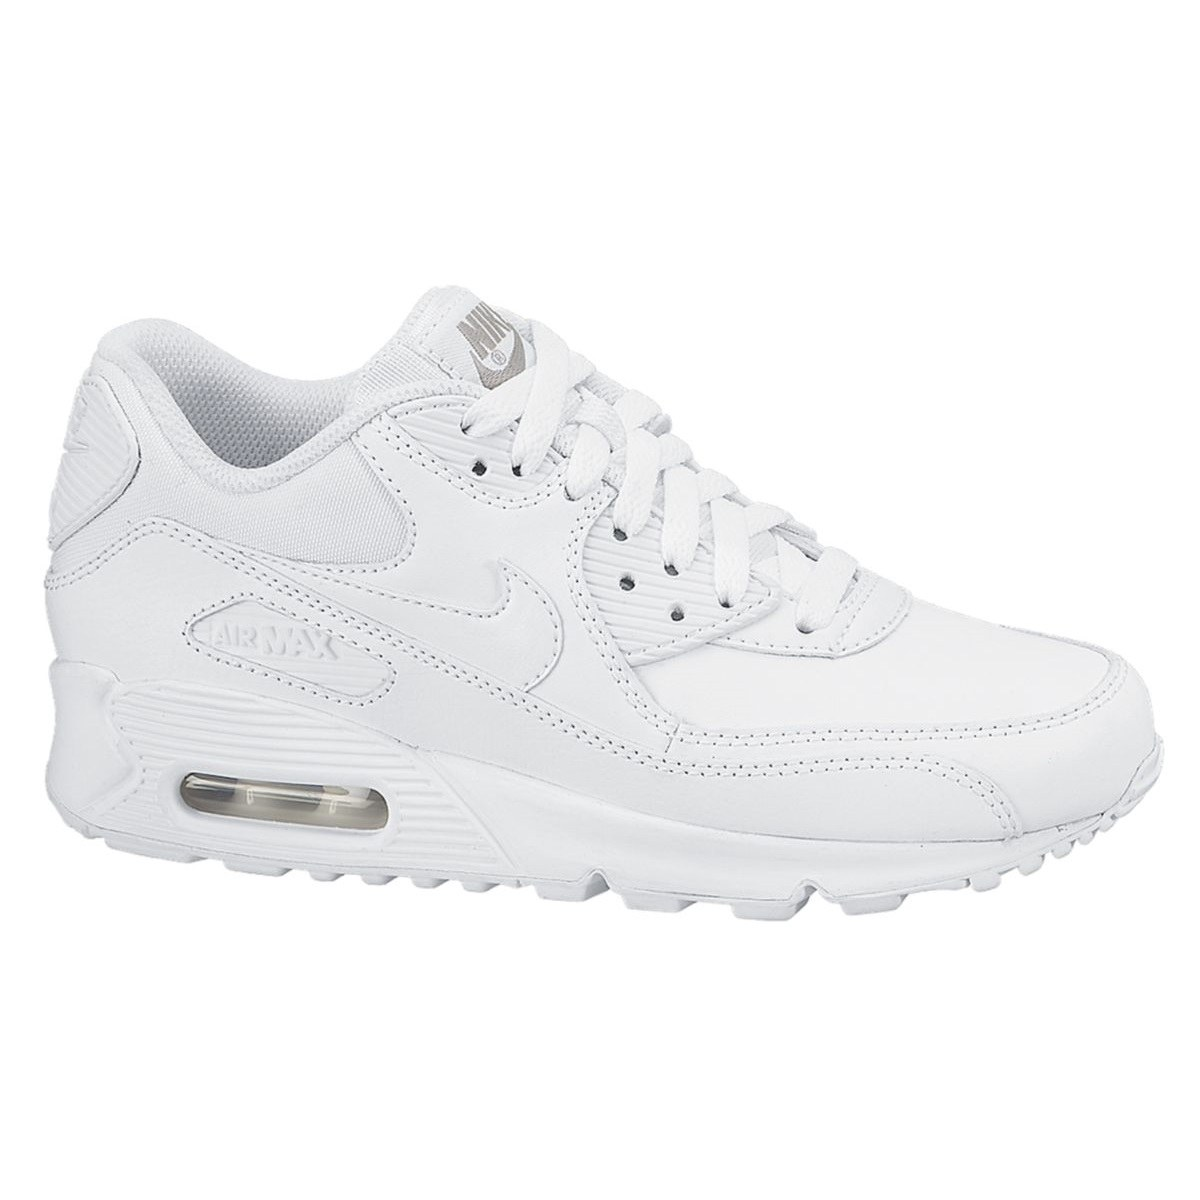 Weiß aktion Damen Max Nike 37 Air MSVqGUzLp